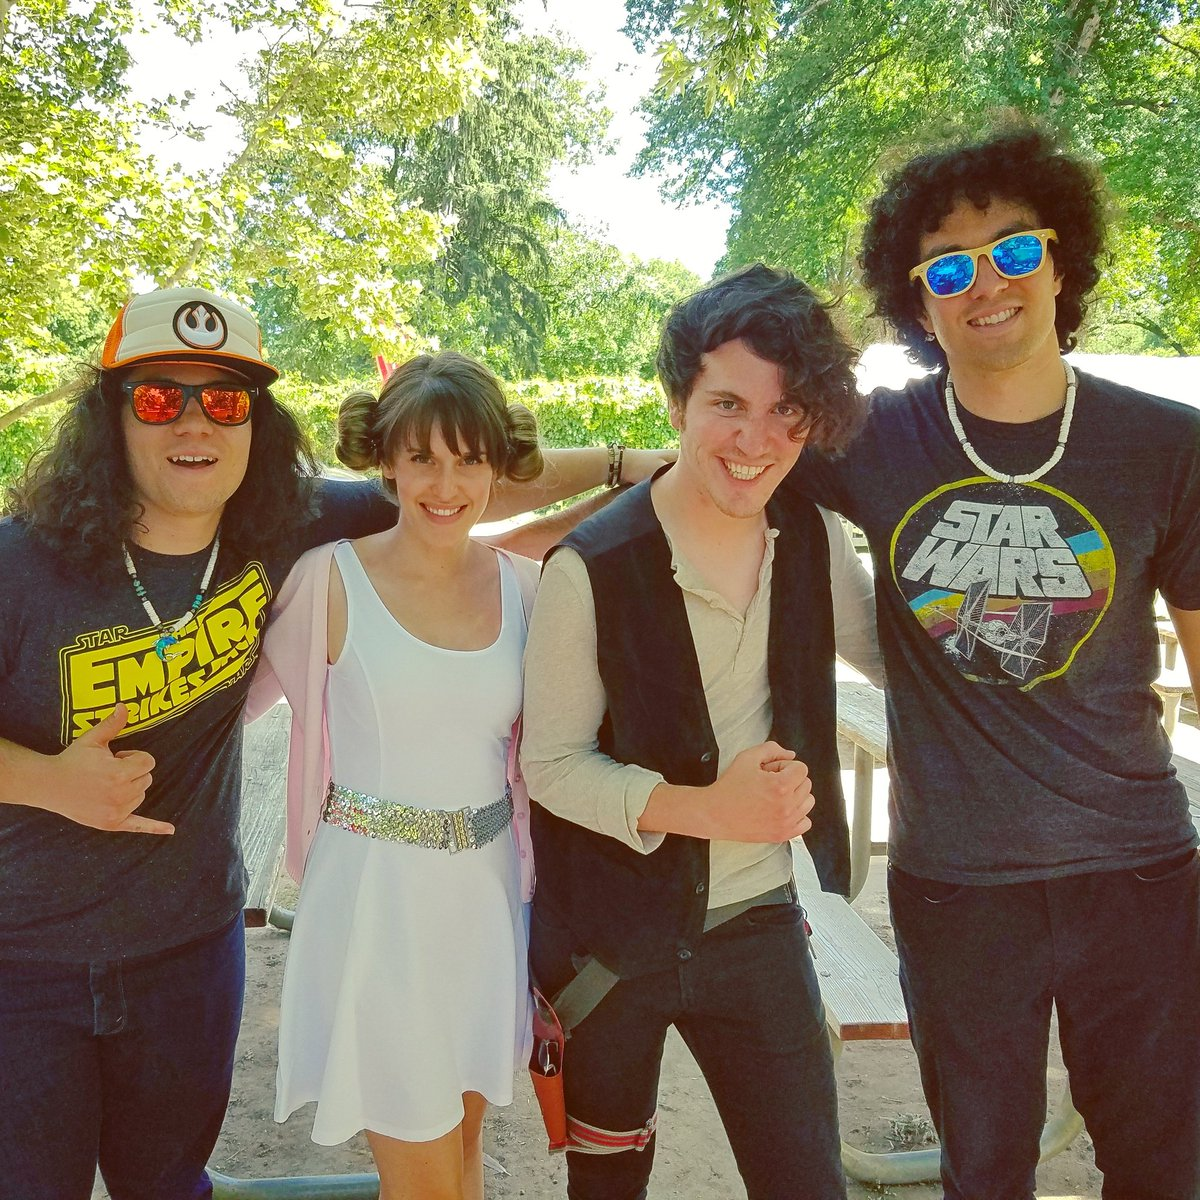 Galactic Day at the #Zoo, with #Han and #Leia too! Loved getting to perform at @ZooBoise #rhymes #zooboise #starwars #beauitful #saturday<br>http://pic.twitter.com/IGQv7SMxki